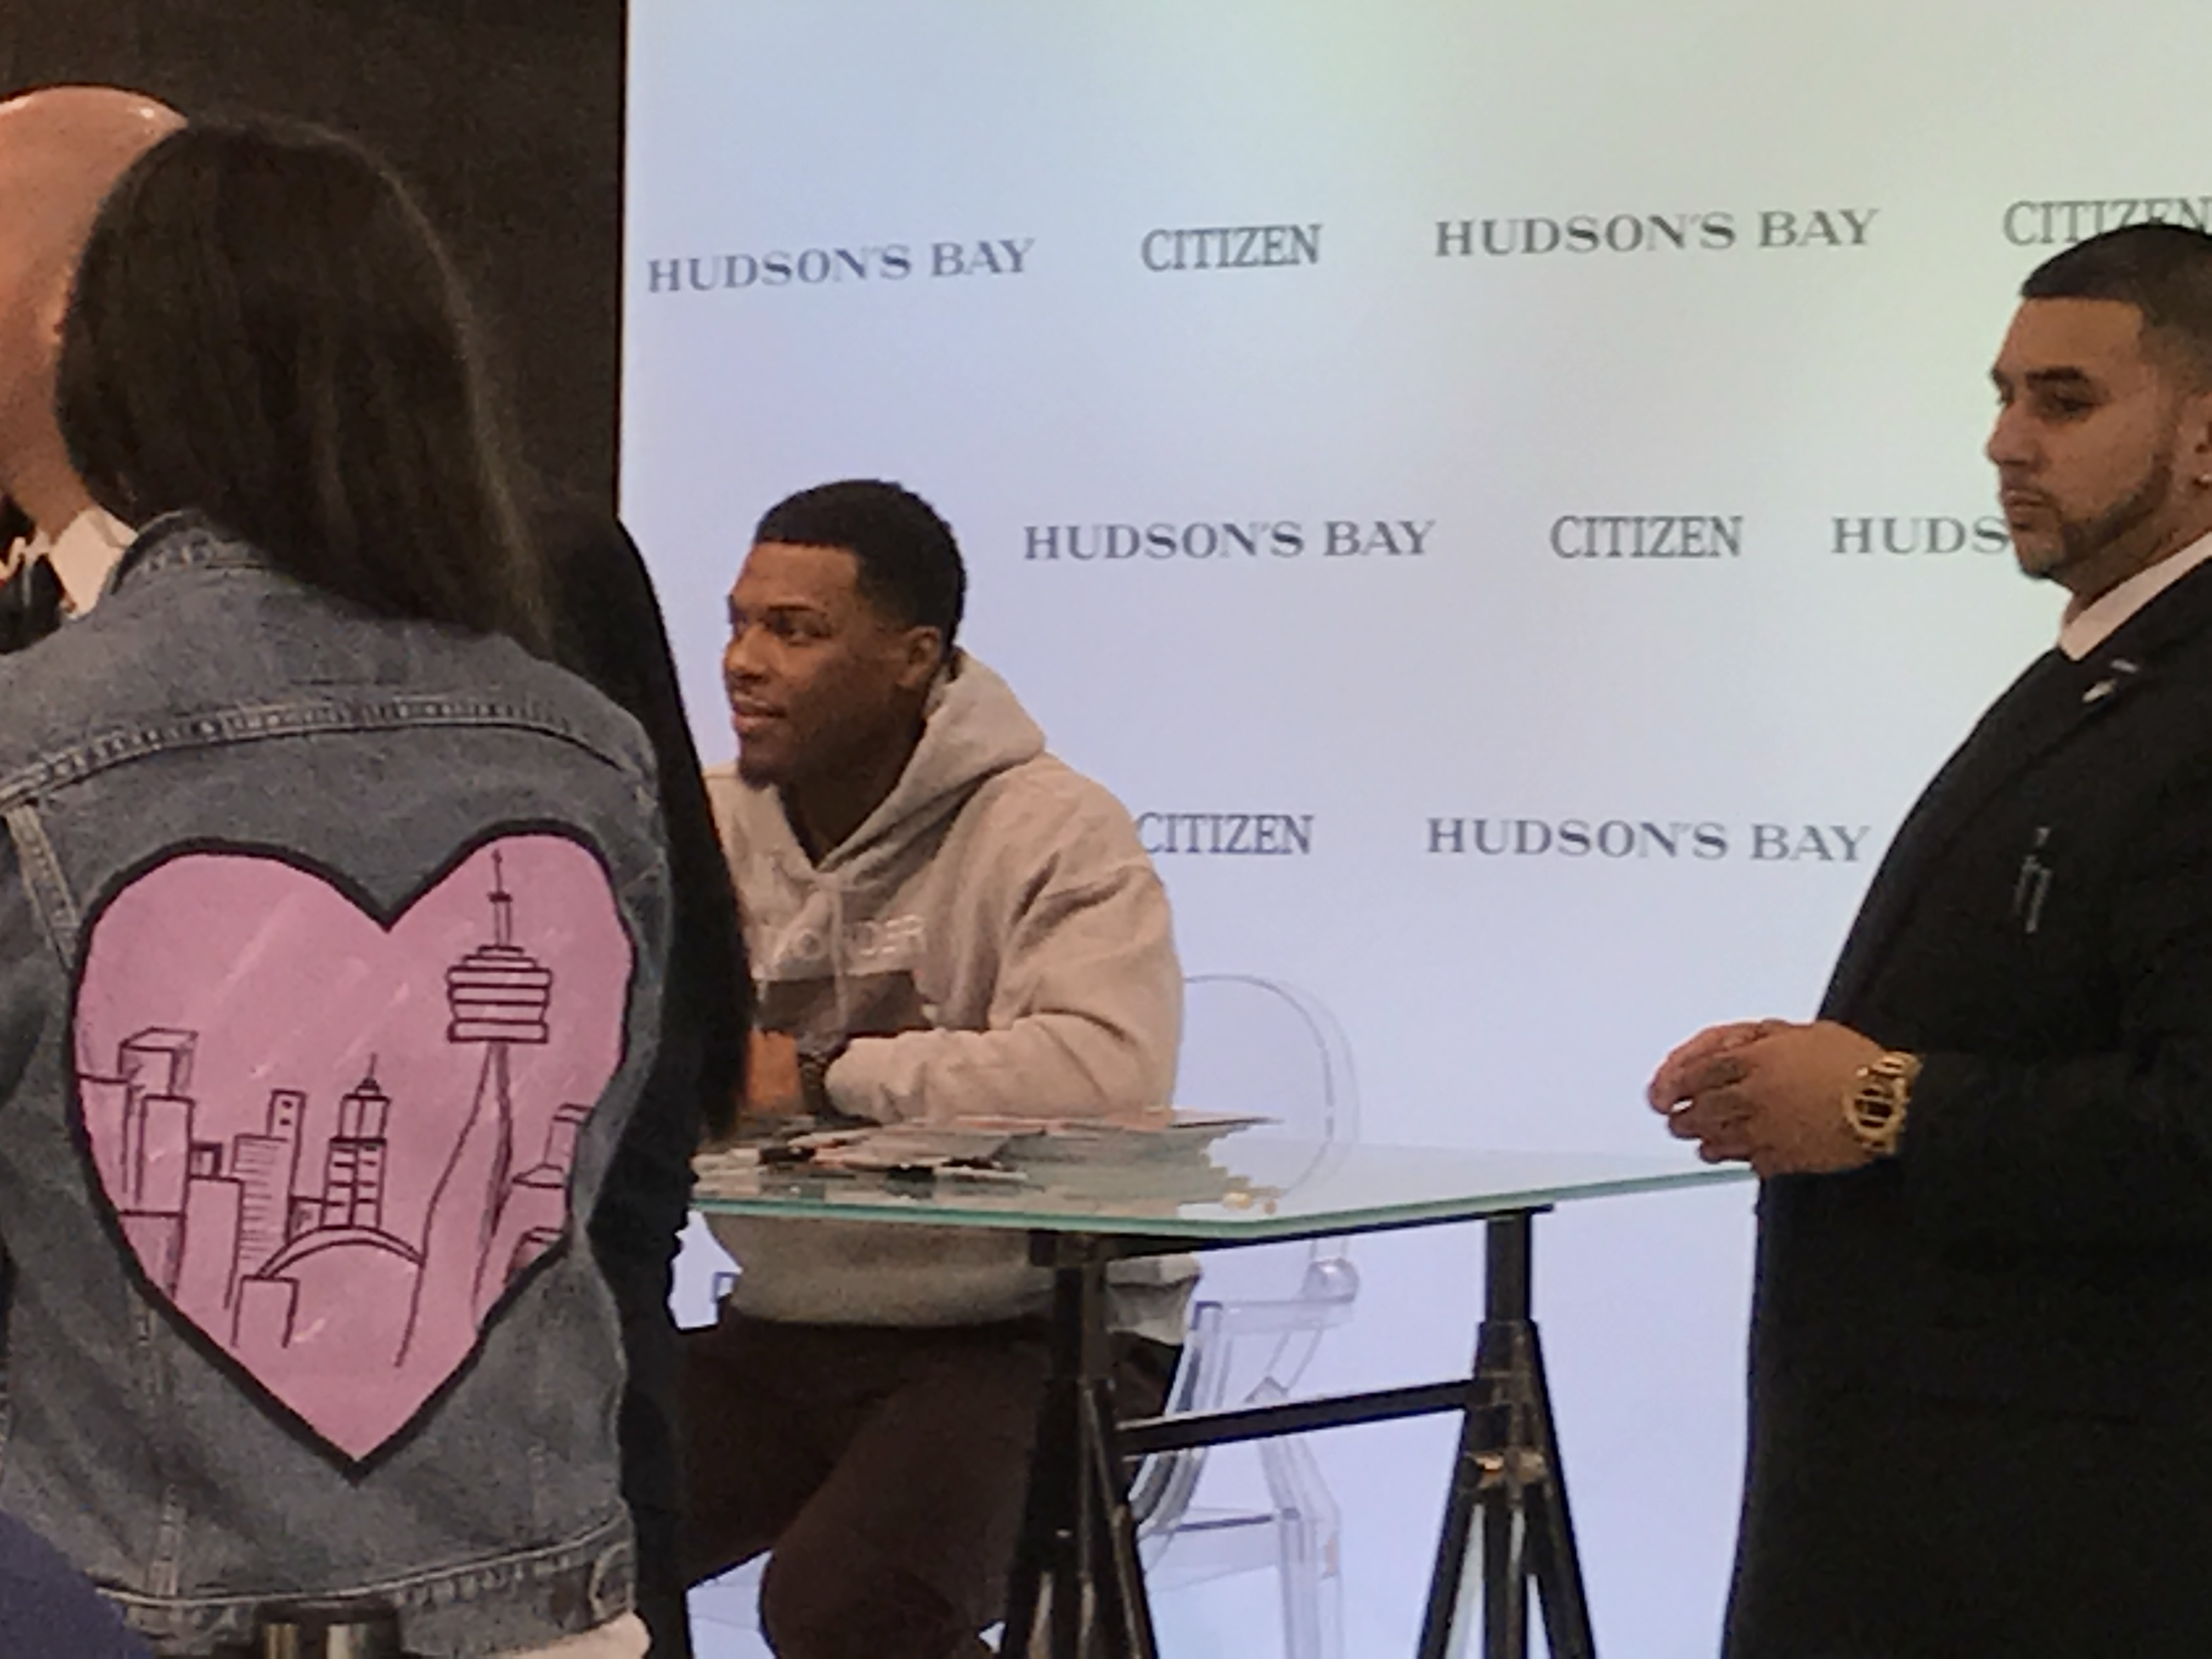 Kyle Lowry x Citizen Nighthawk Event at Hudson's Bay